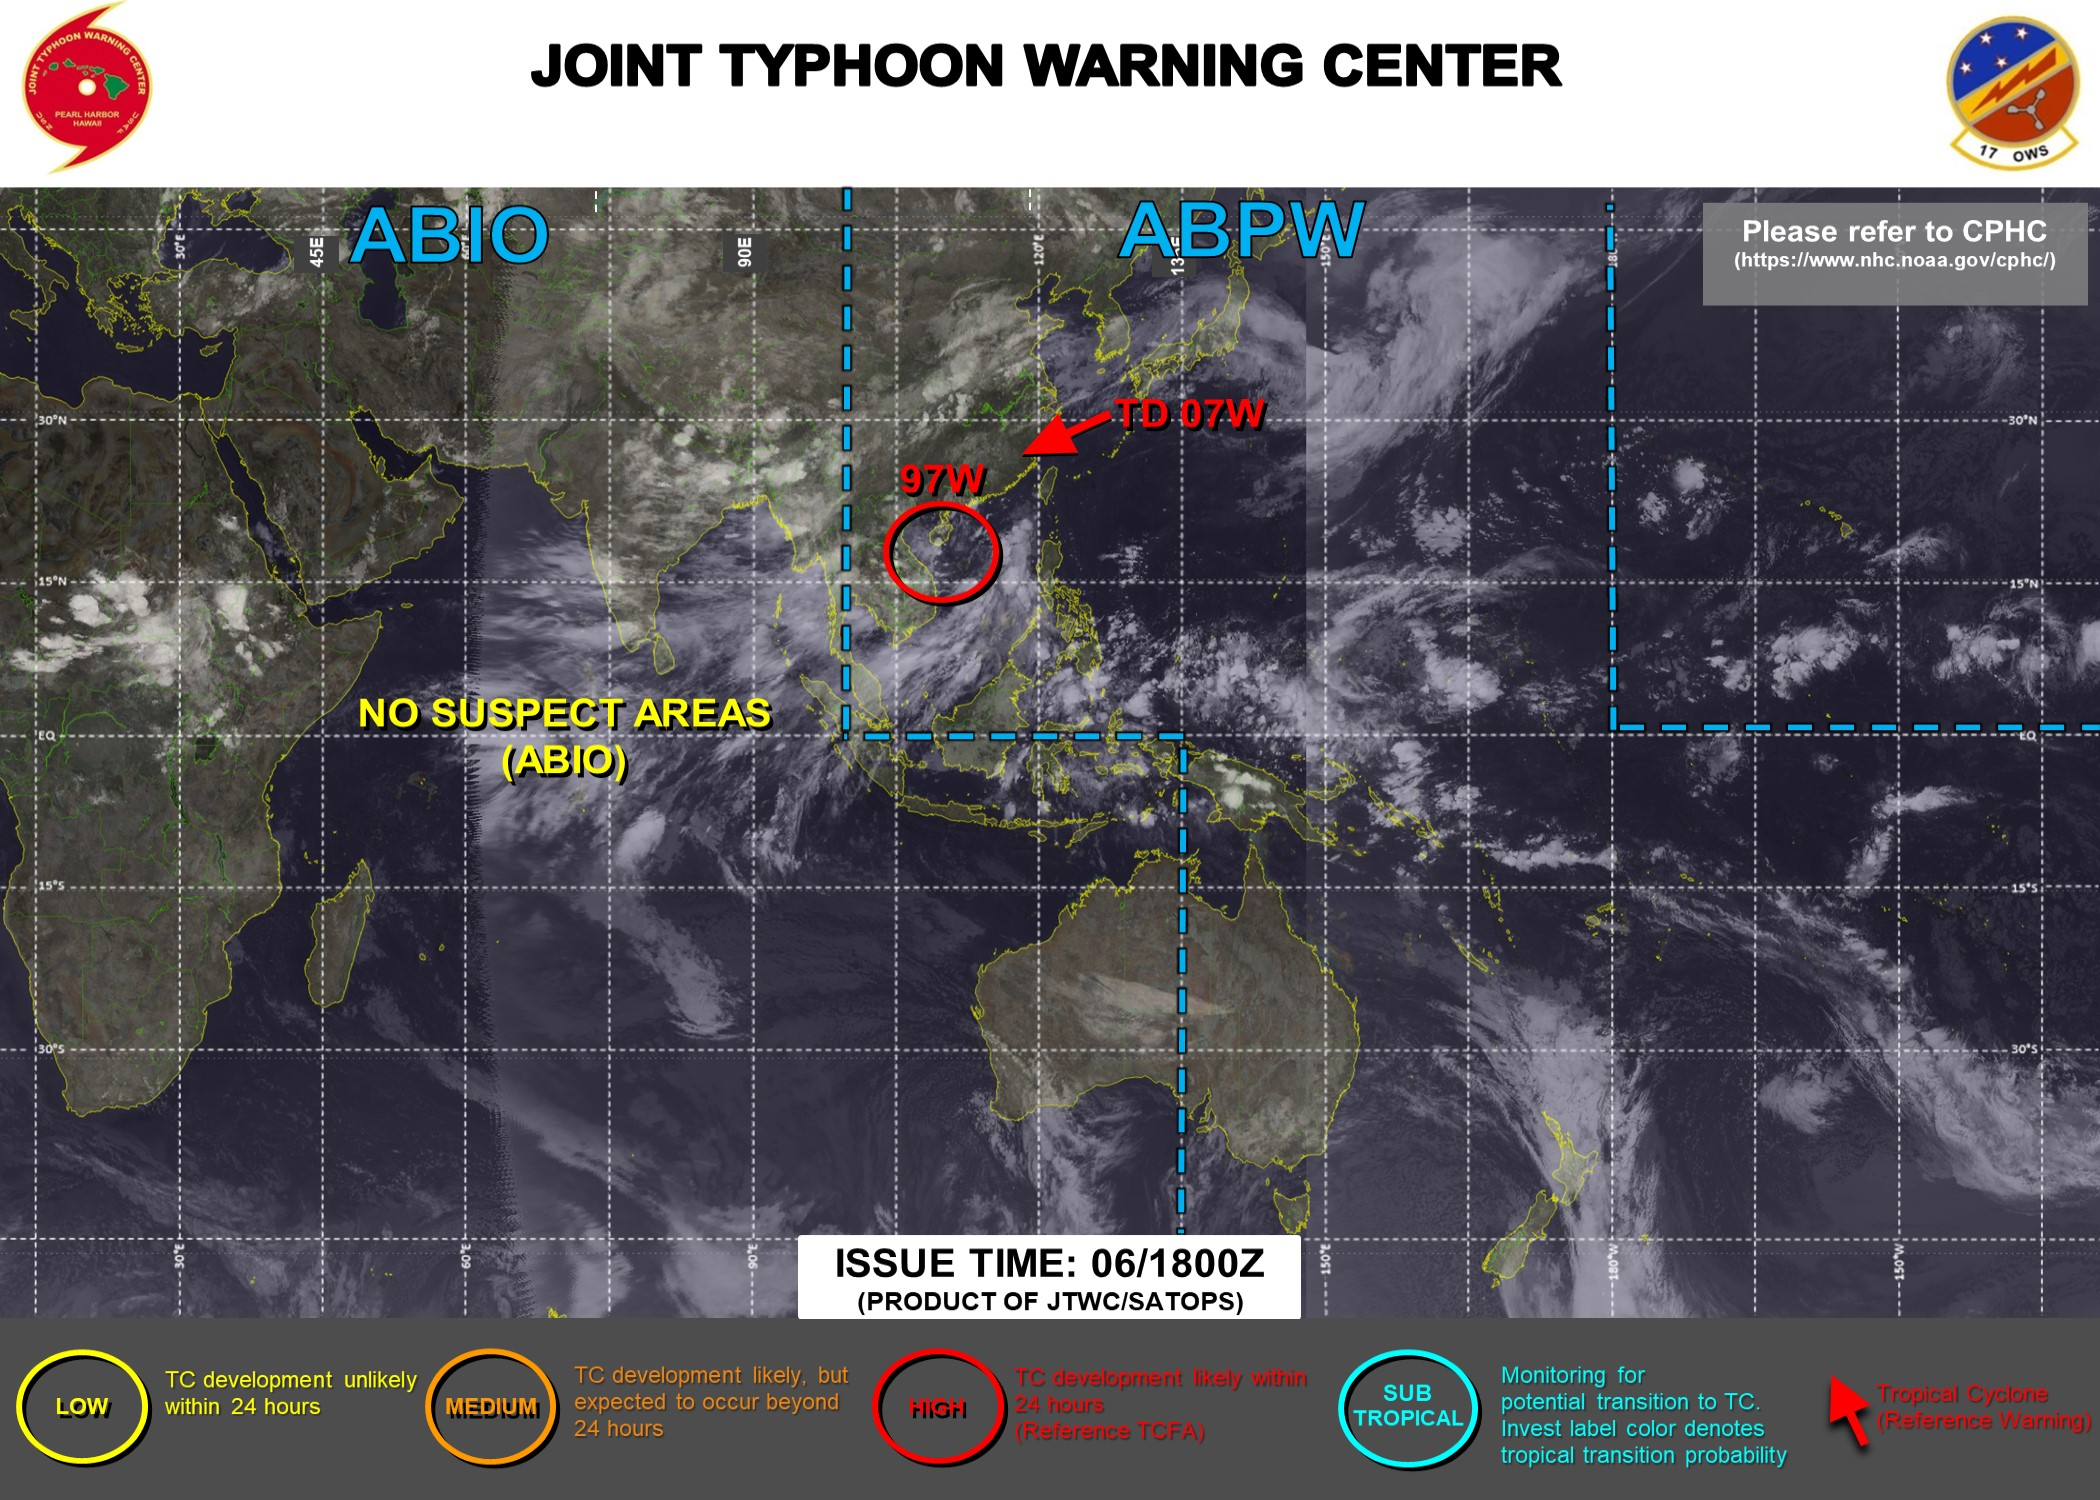 JTWC ISSUED THE FINAL WARNING ON TD 07W AT 06/03UTC. A TROPICAL CYCLONE FORMATION ALERT IS STILL IN FORCE FOR INVEST 97W AT 06/18UTC.